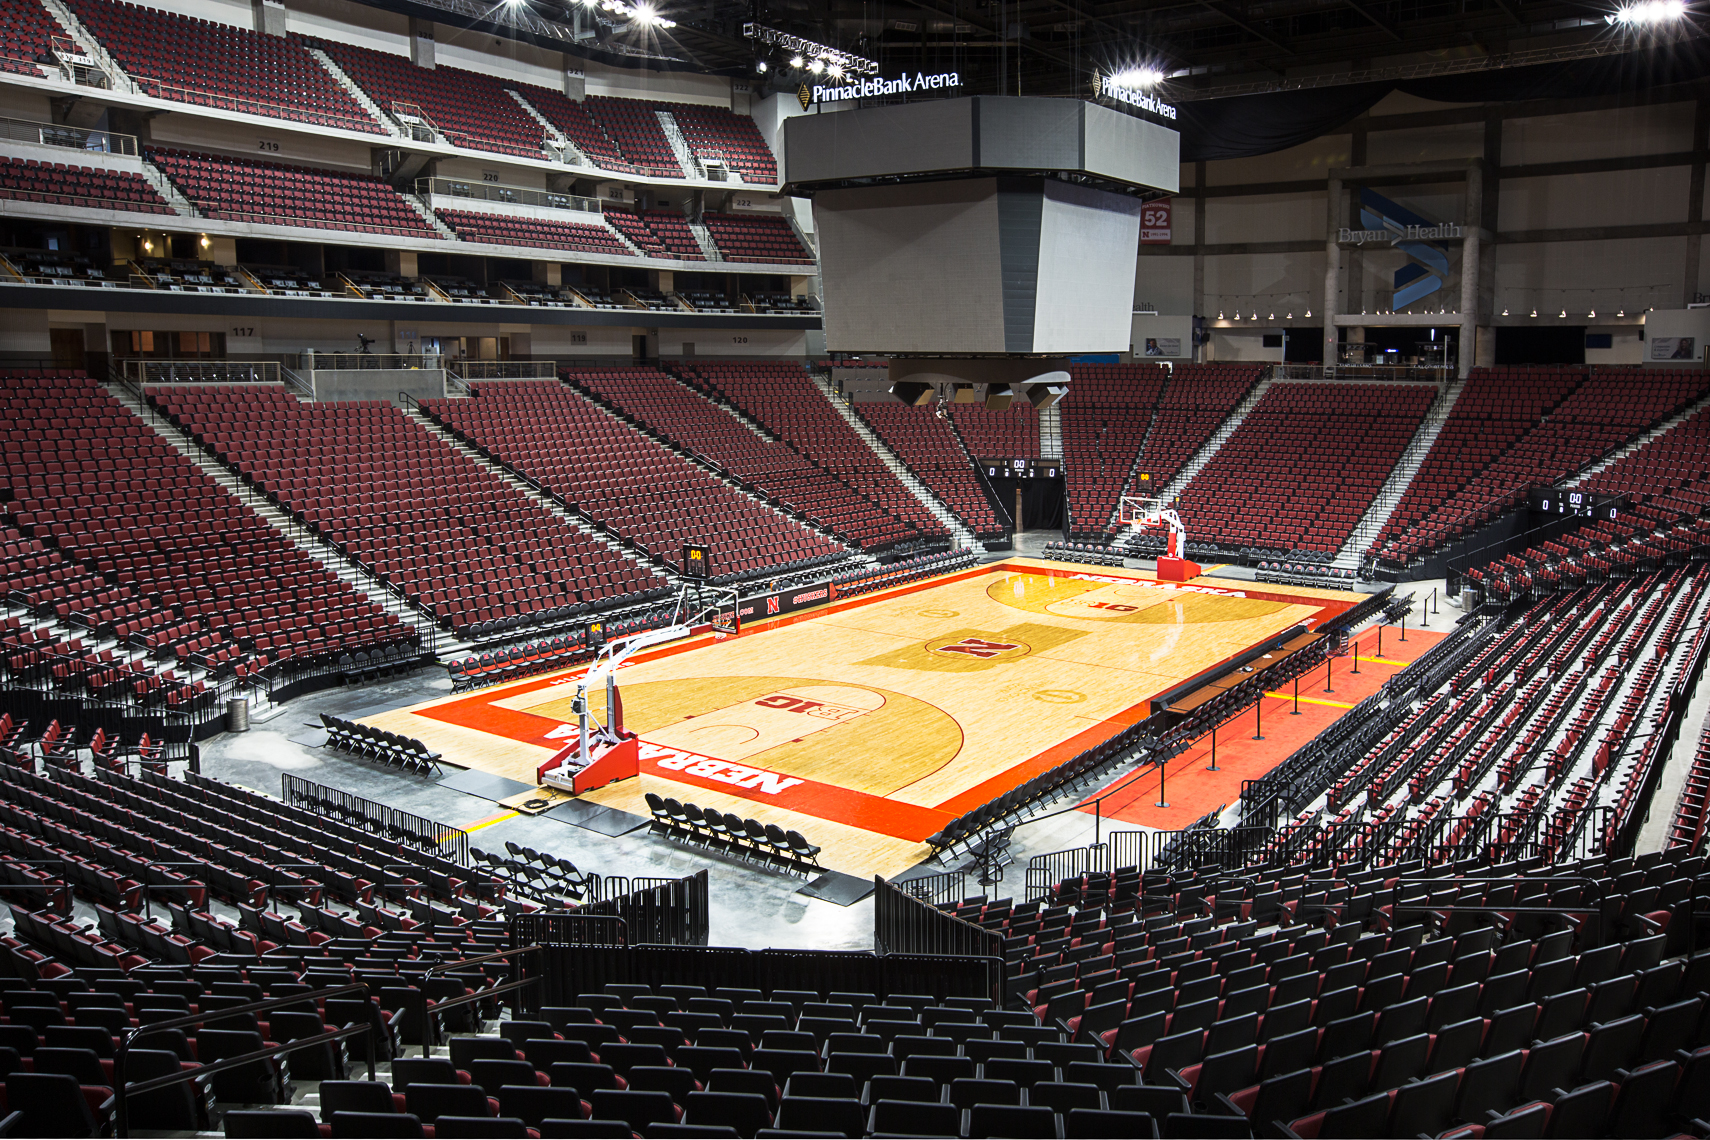 013_Pinnacle_Arena2_8267-2